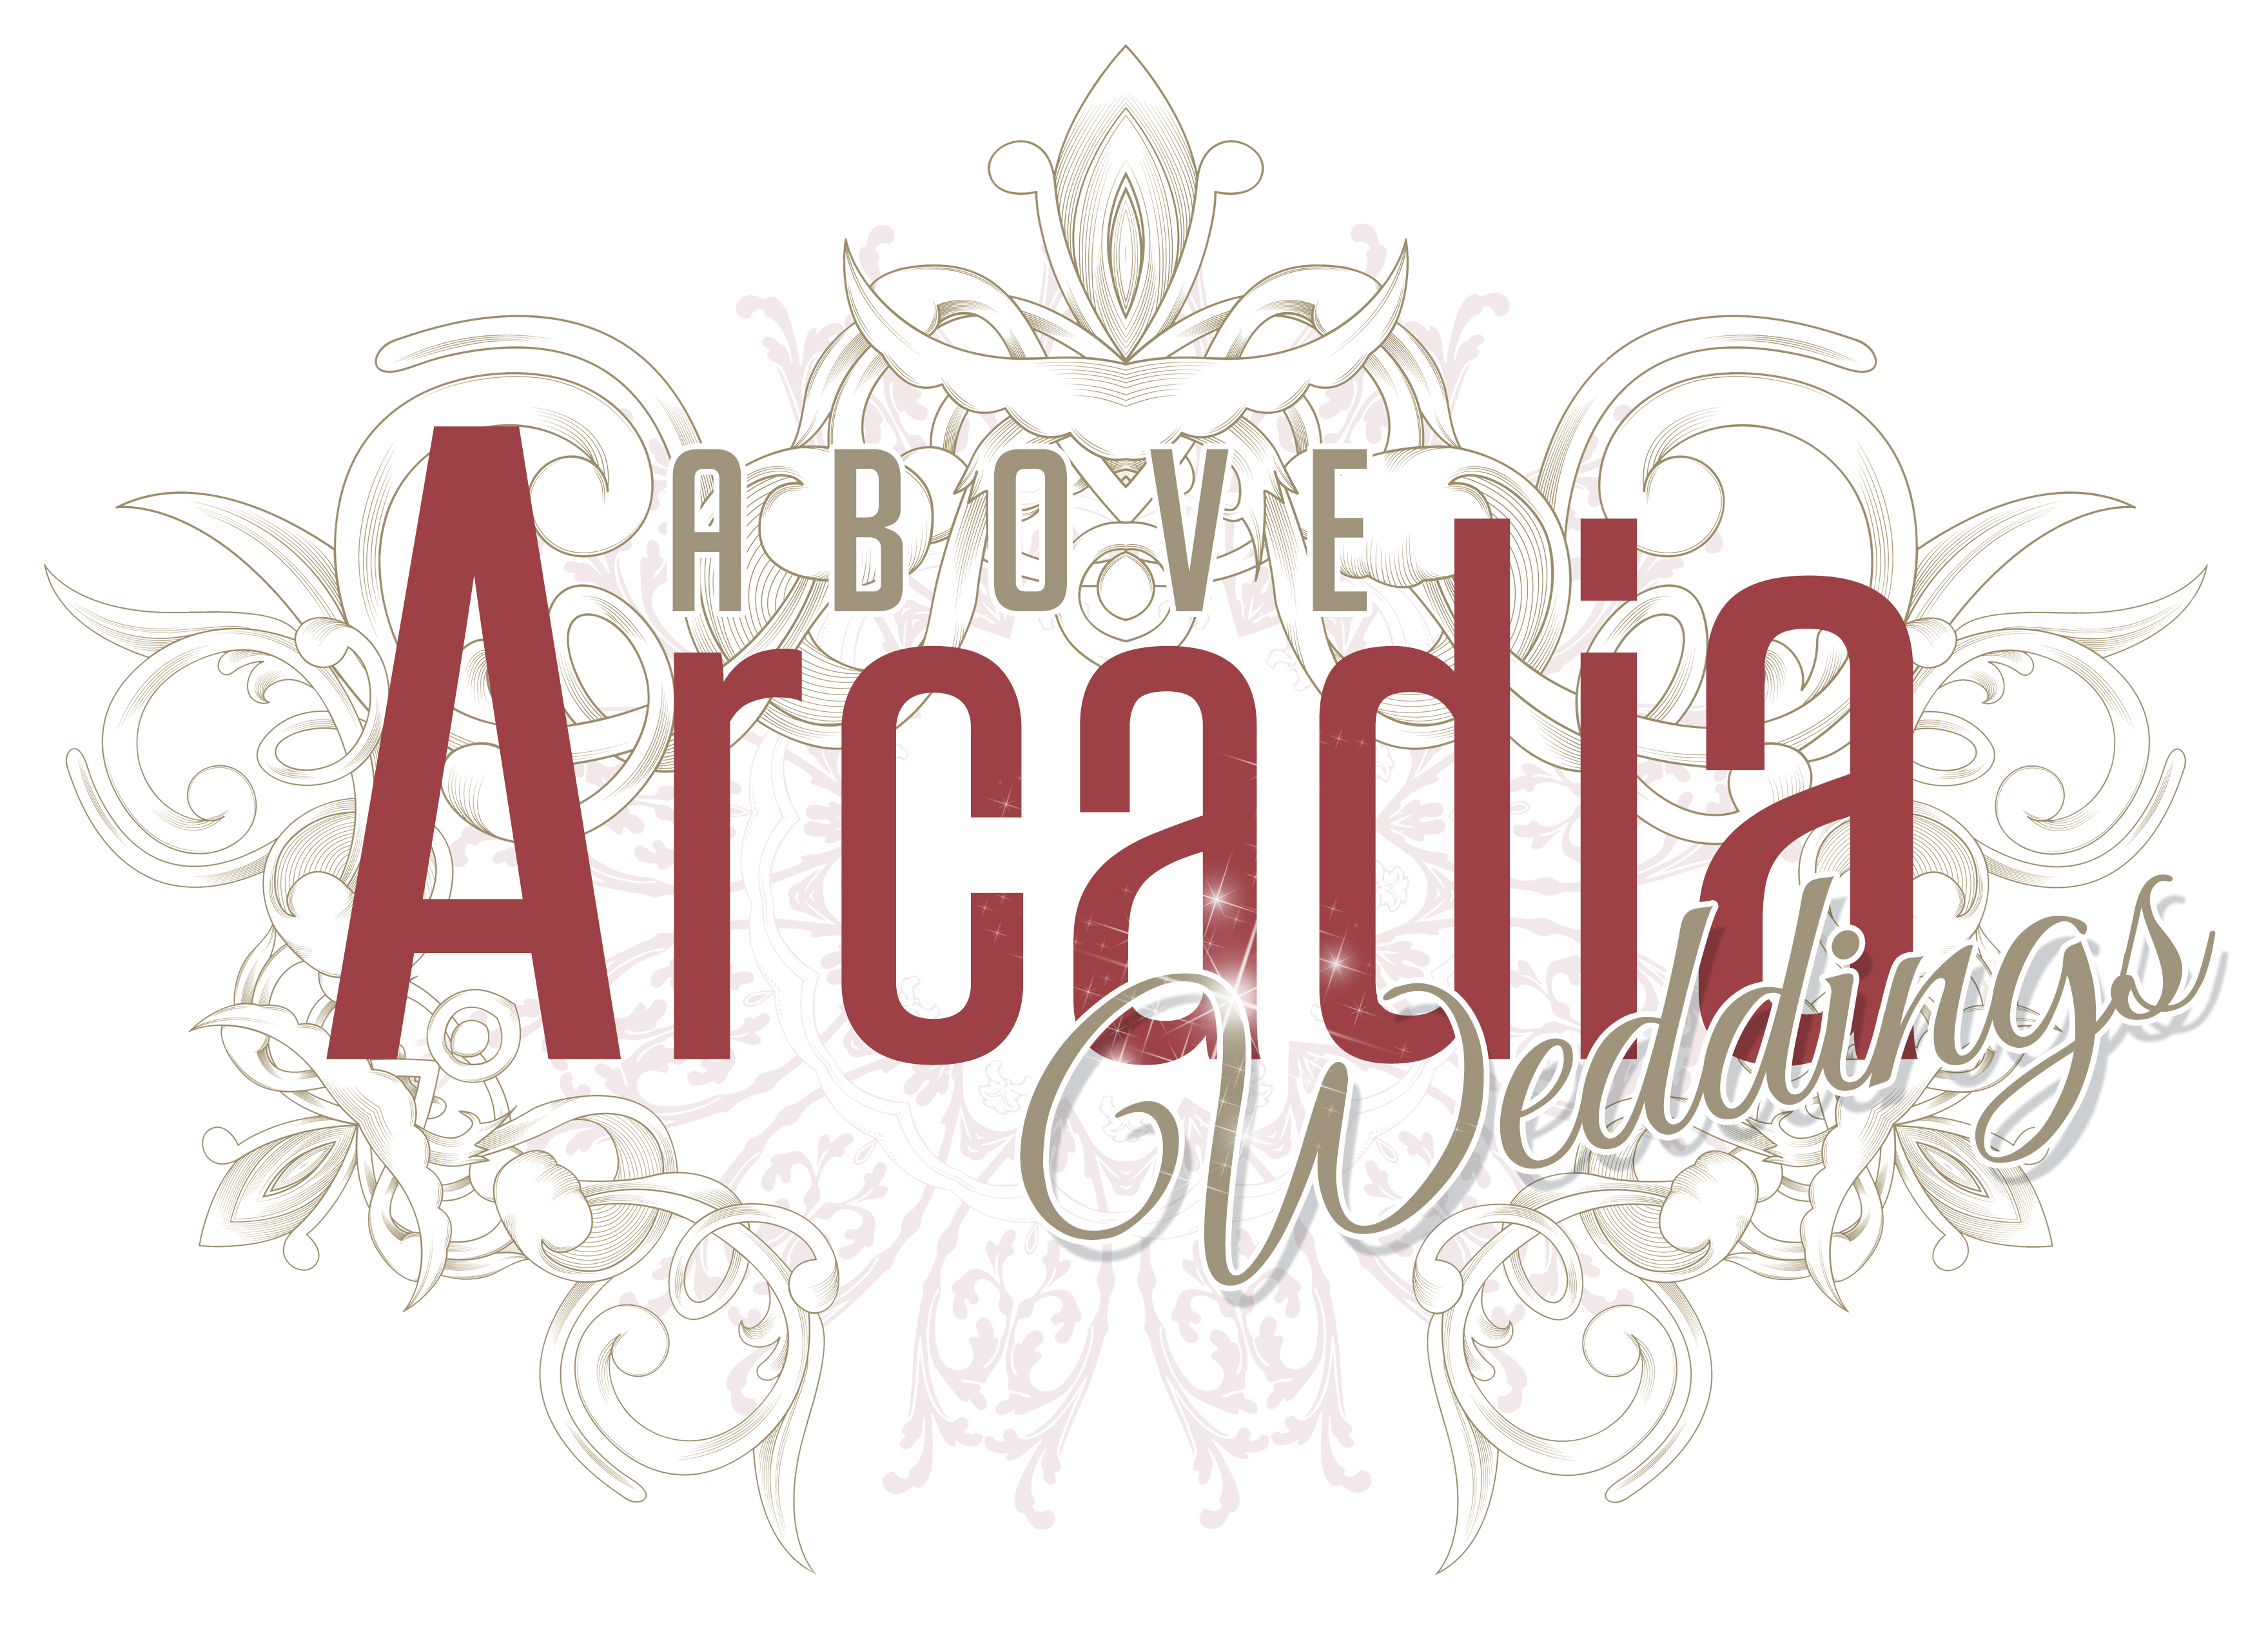 Above Arcadia Productions